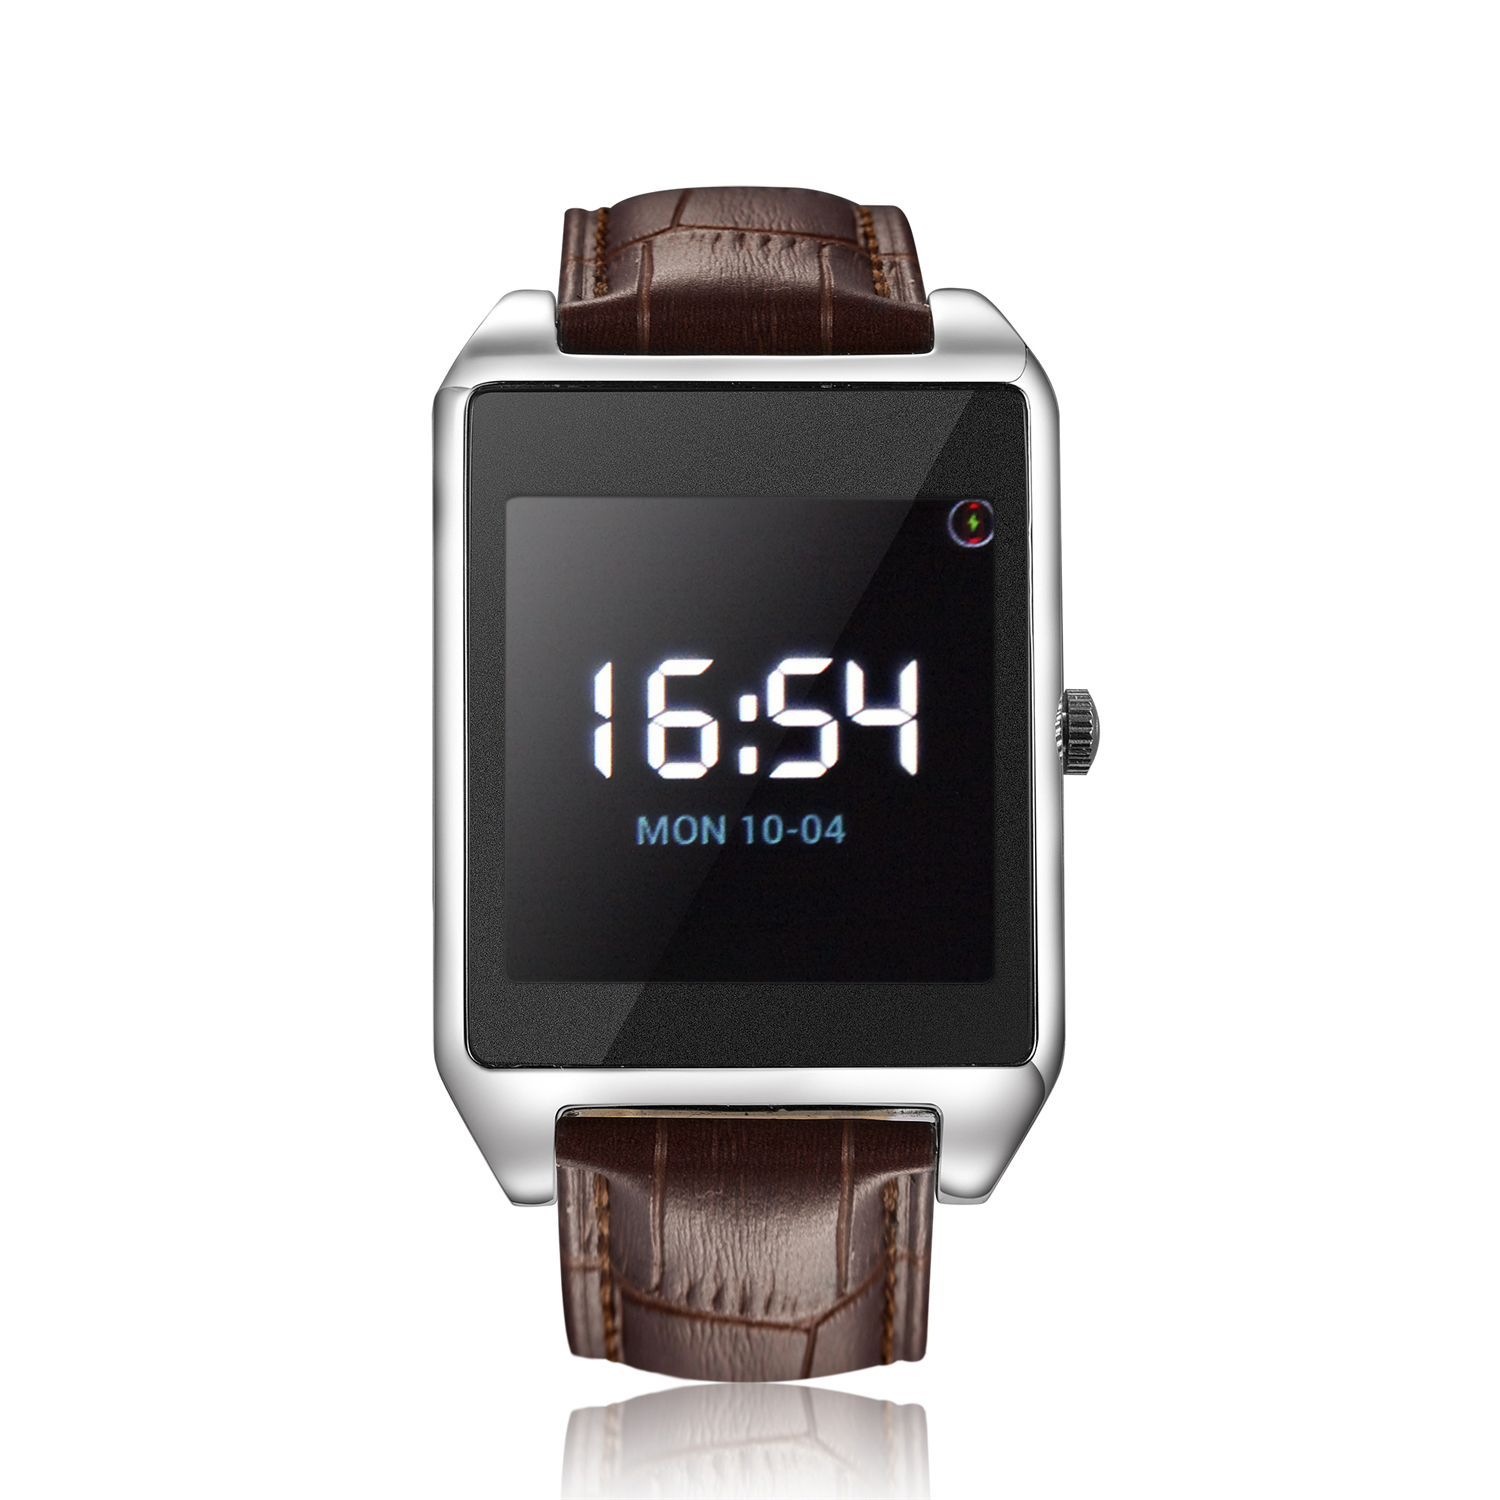 Atongm W013 Smart Bluetooth Watch Android 4.3 Waterproof 1.6 Inch for Android/IOS